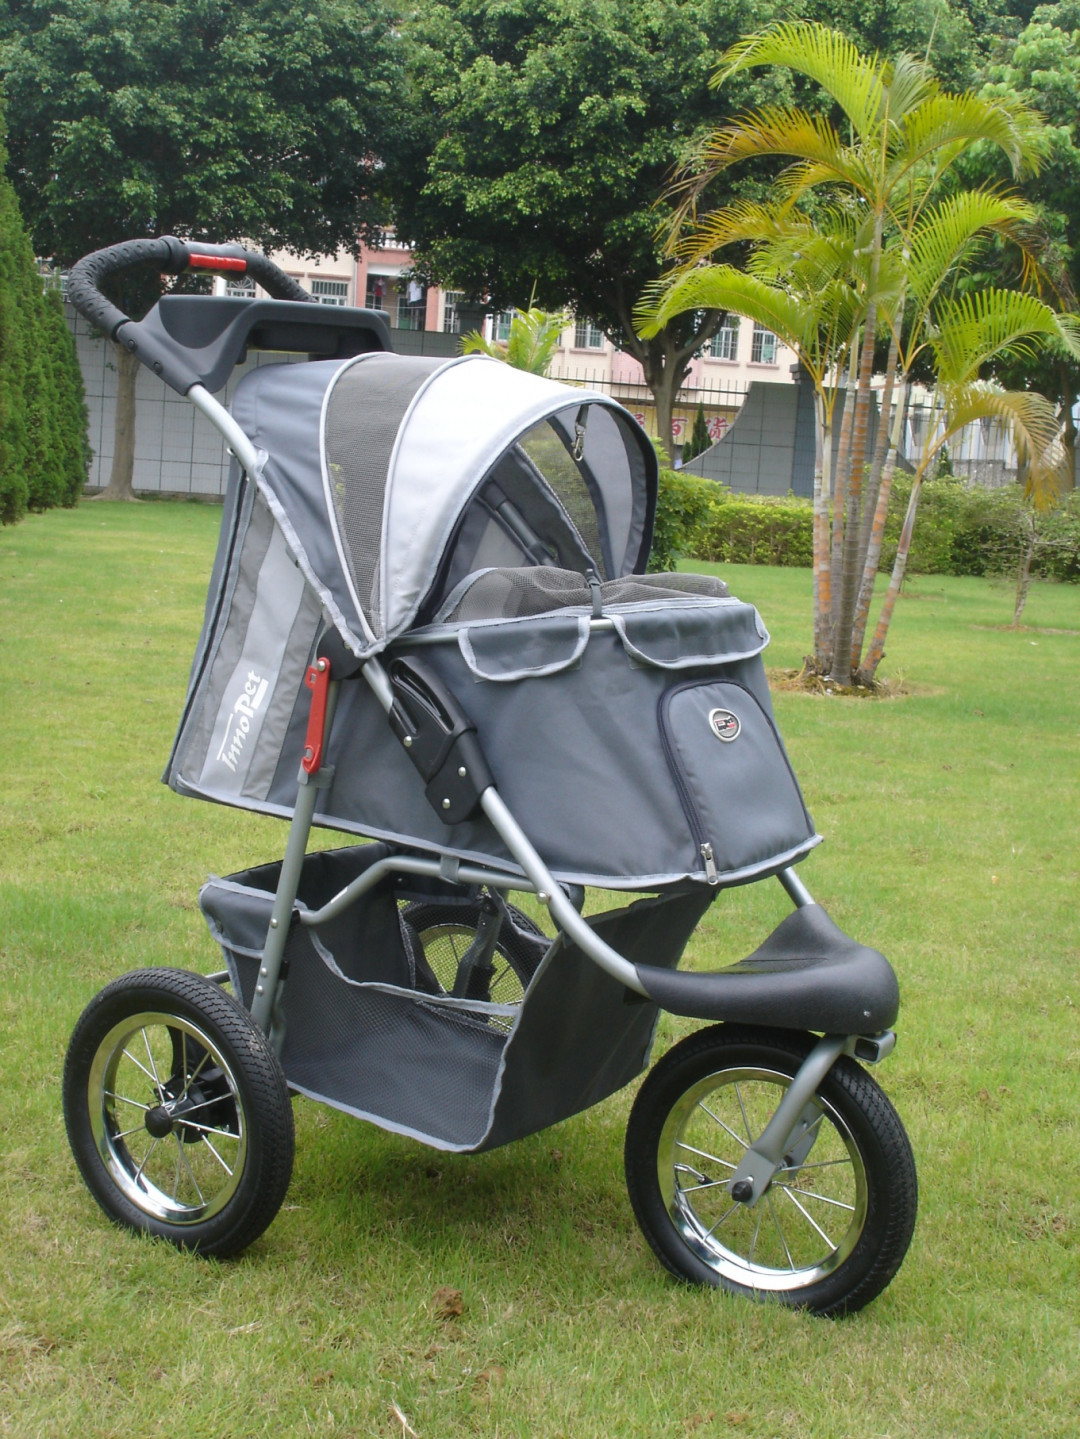 Innopet hondenbuggy Comfort AIR dark grey/light grey